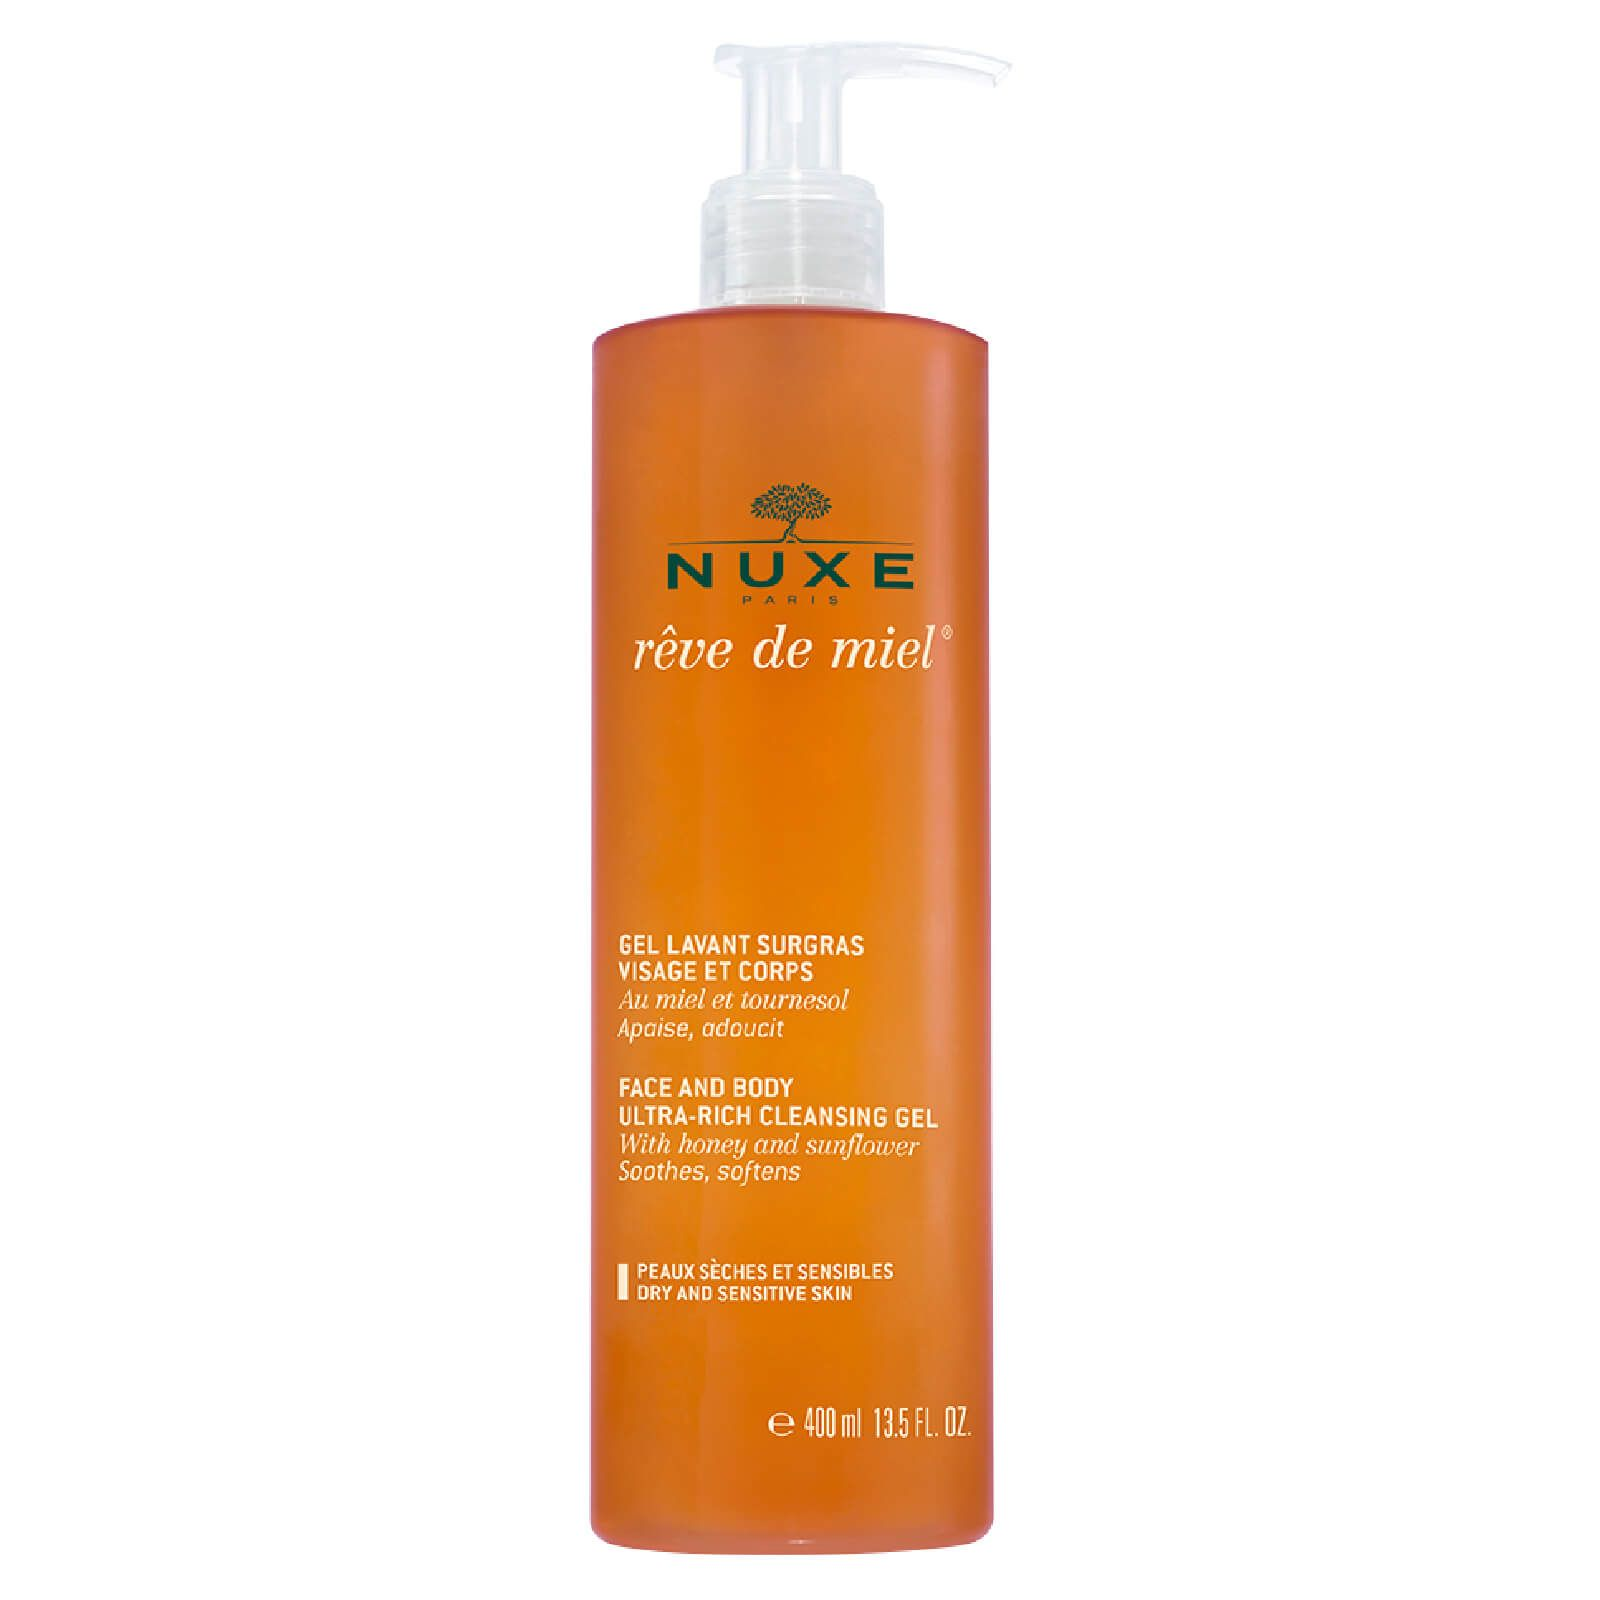 NUXE - Face And Body Ultra-Rich Cleansing Gel 400ml